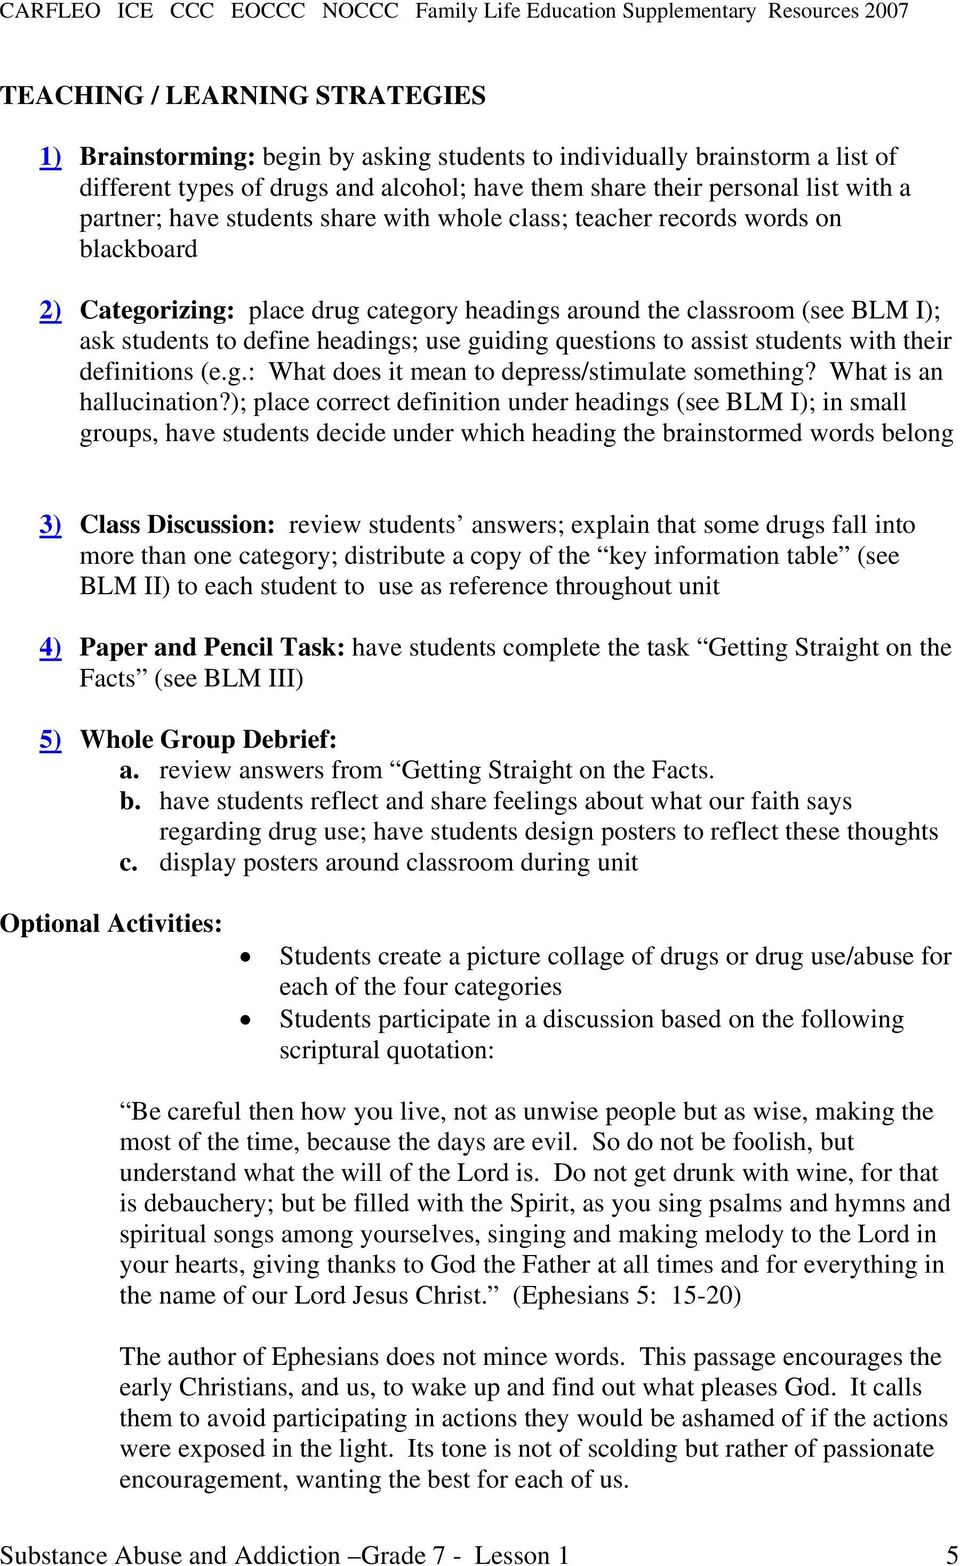 substance use and abuse grade 7 unit overview. note: this lesson can